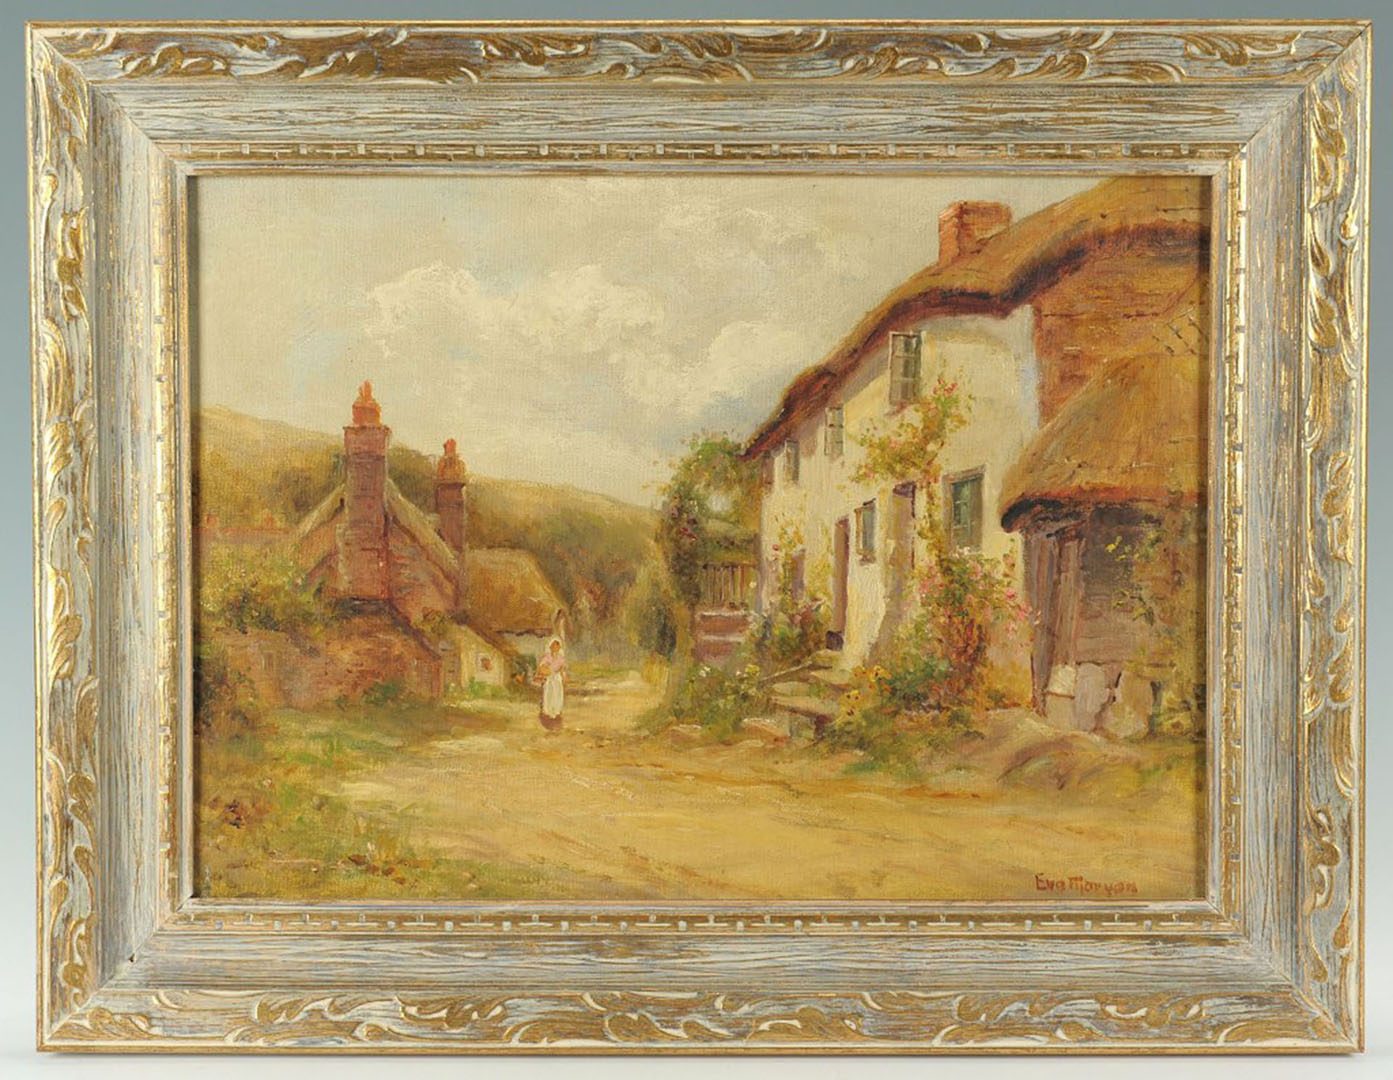 Lot 2872251: 19th Cent. Oil on Canvas by Eva Maryan